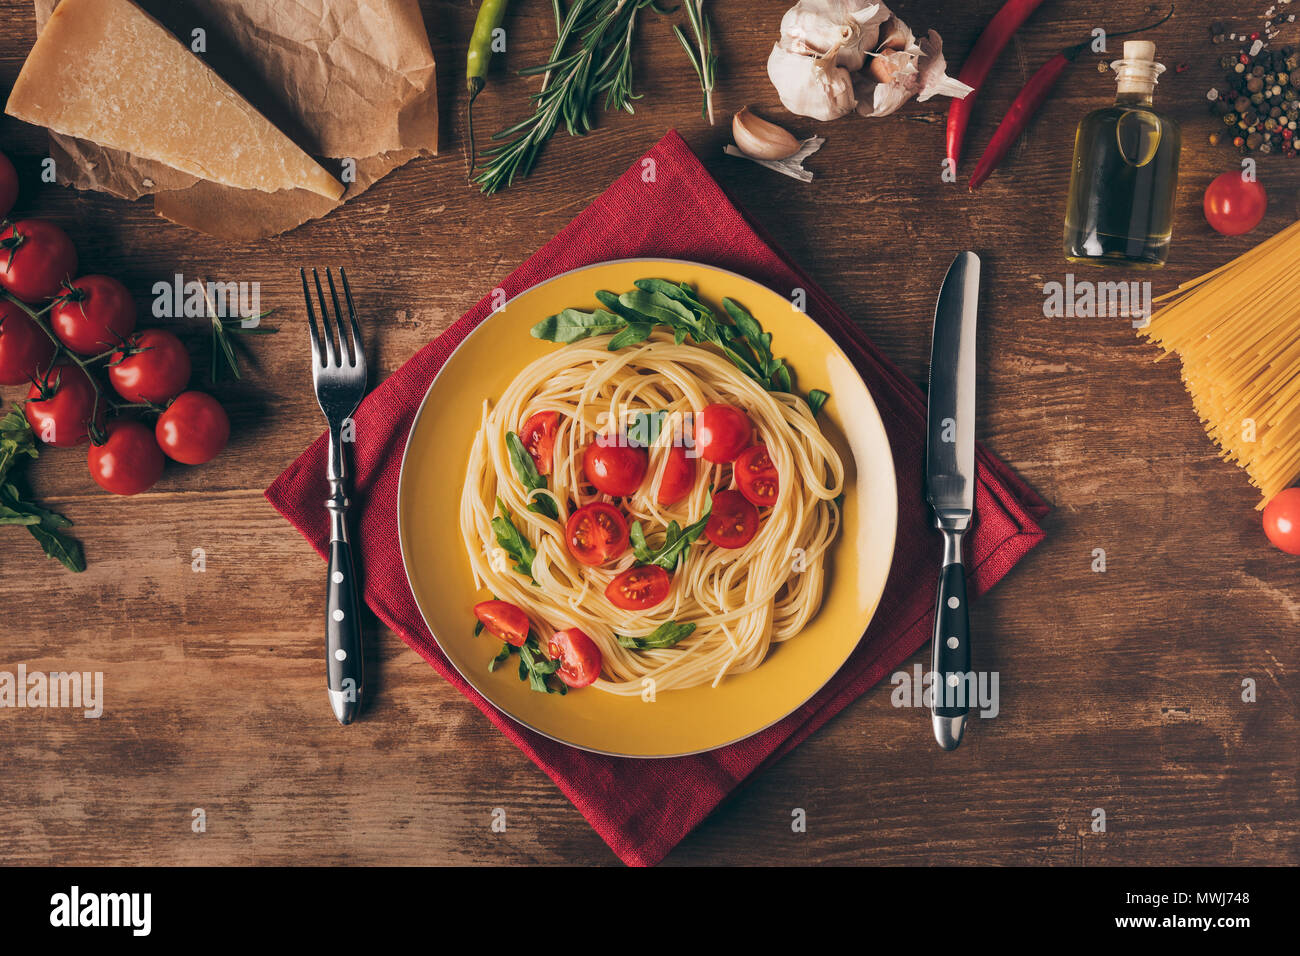 top view of traditional italian pasta with tomatoes and arugula in plate on wooden table with ingredients - Stock Image